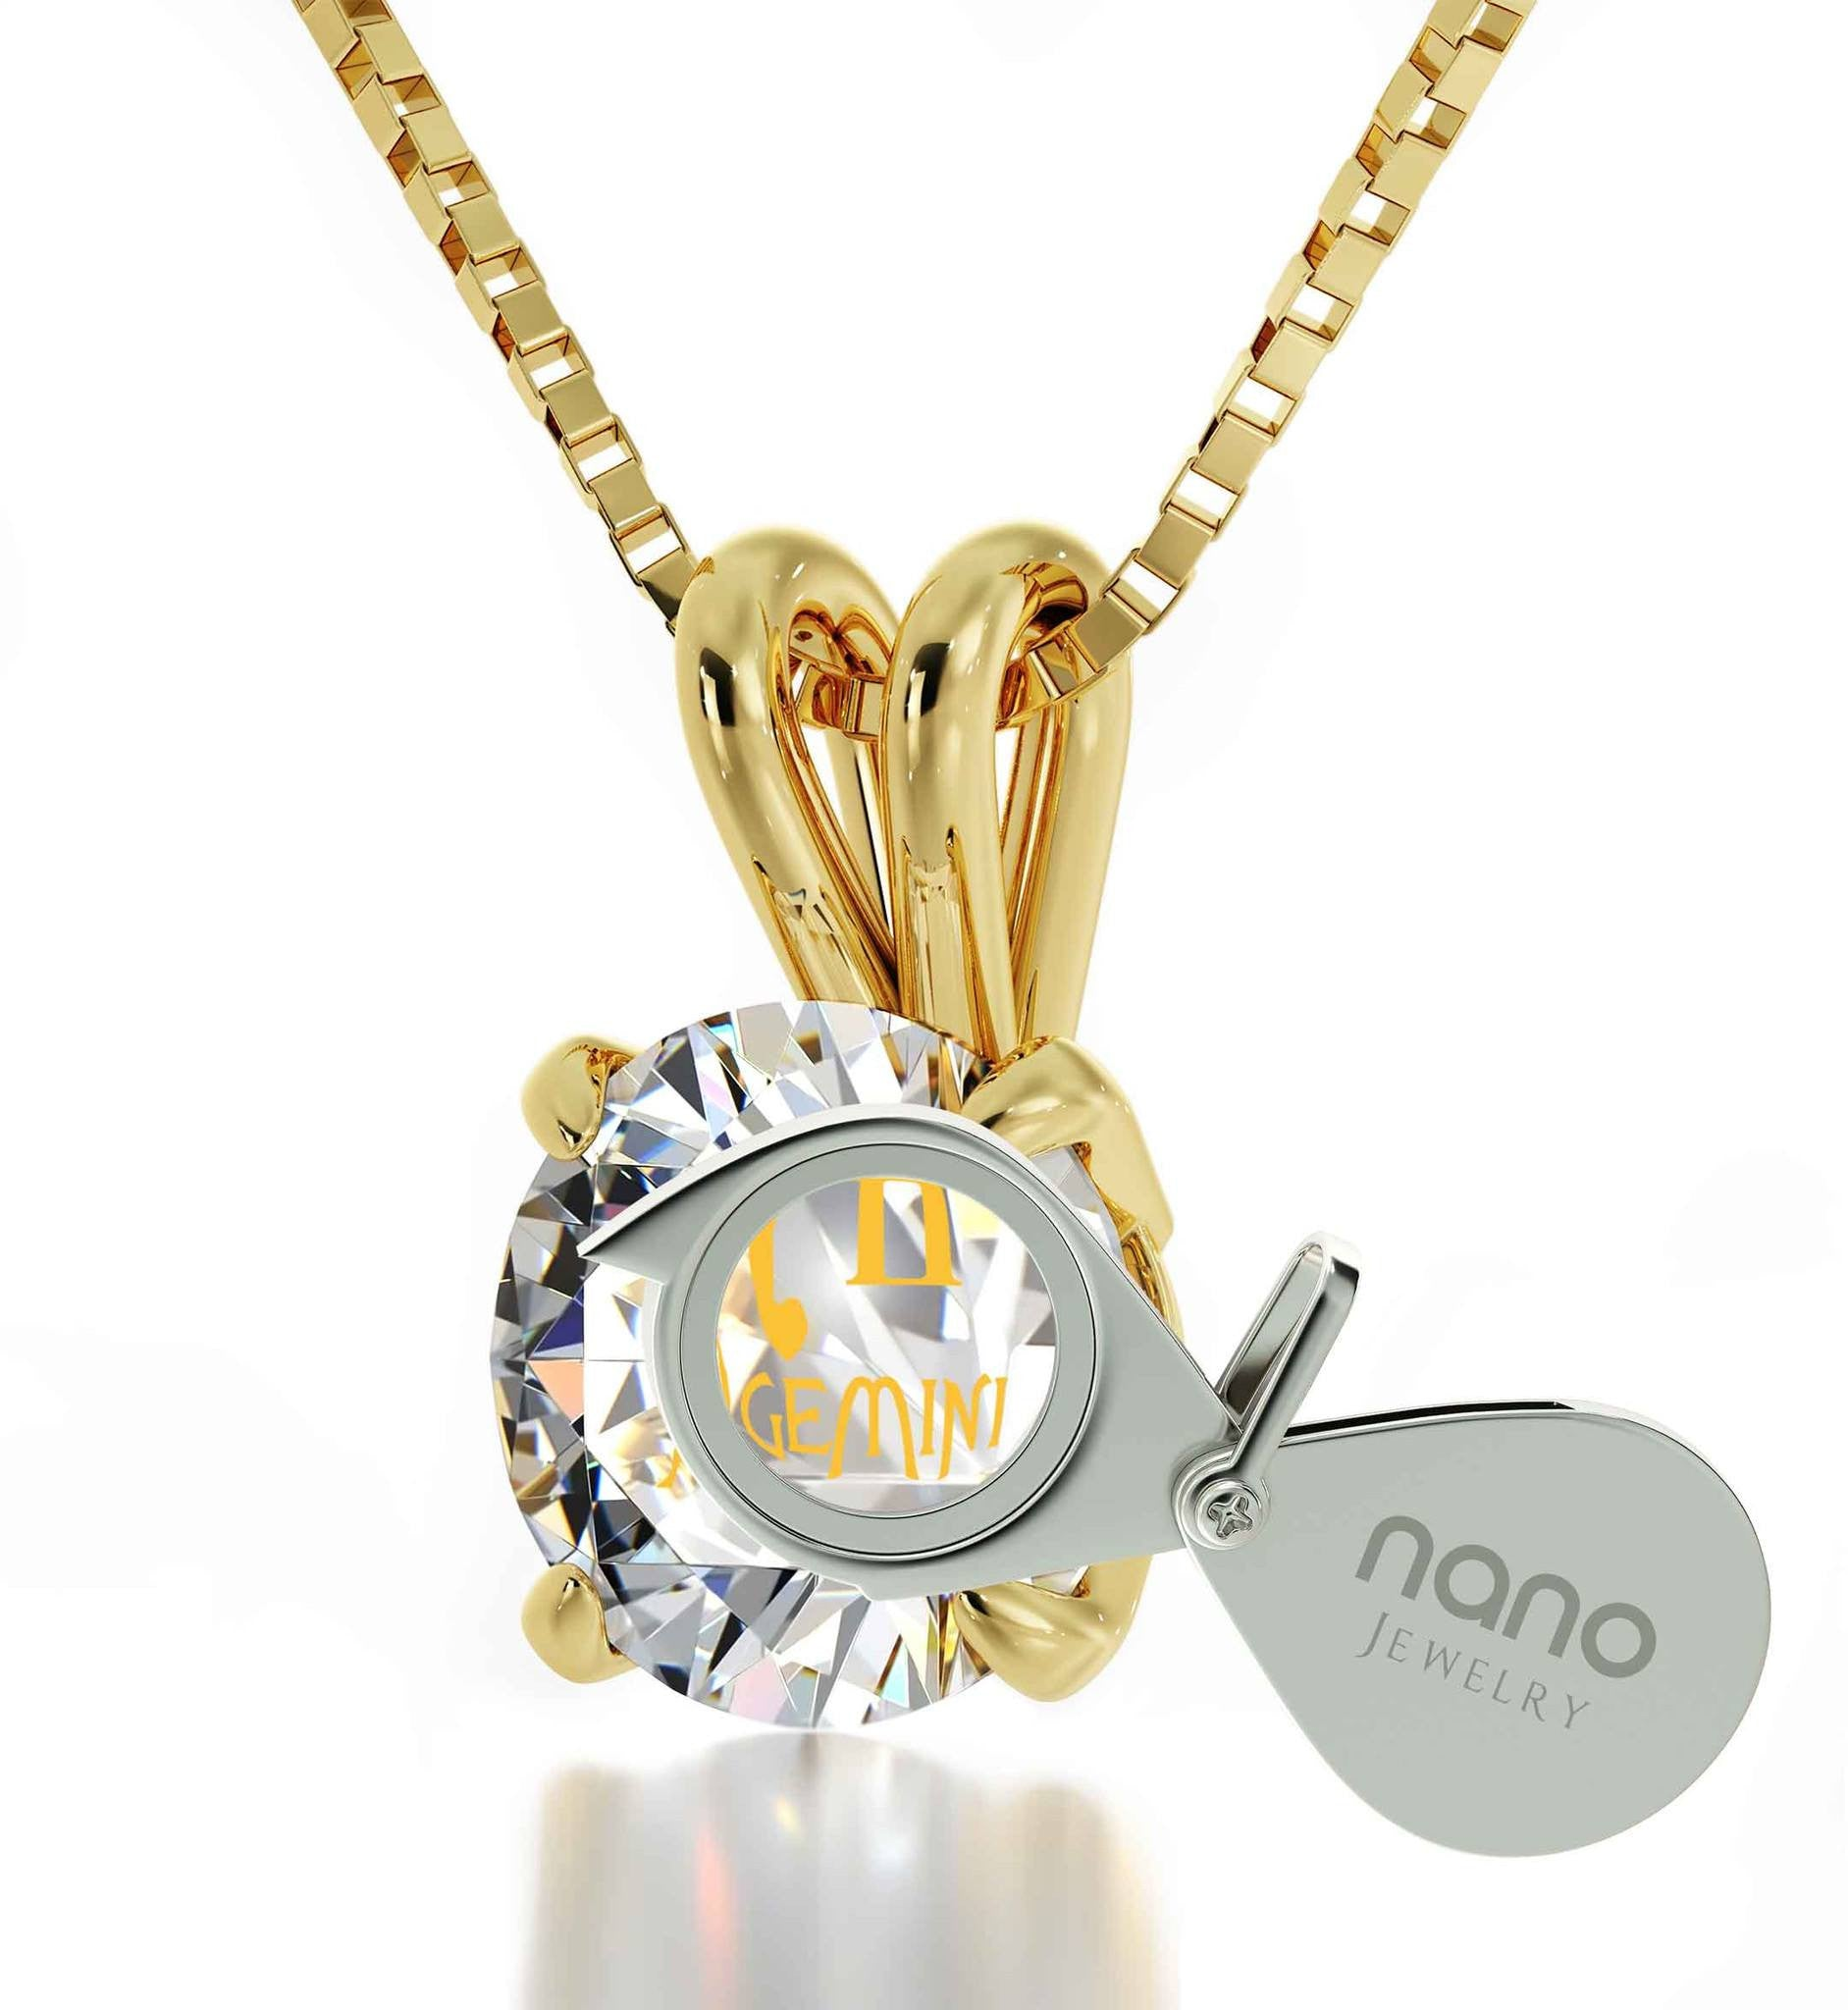 """GirlfriendBirthdayIdeas:GeminiNecklace,14kGoldJewelry for Women, ValentineGifts for BestFriend by Nano"""